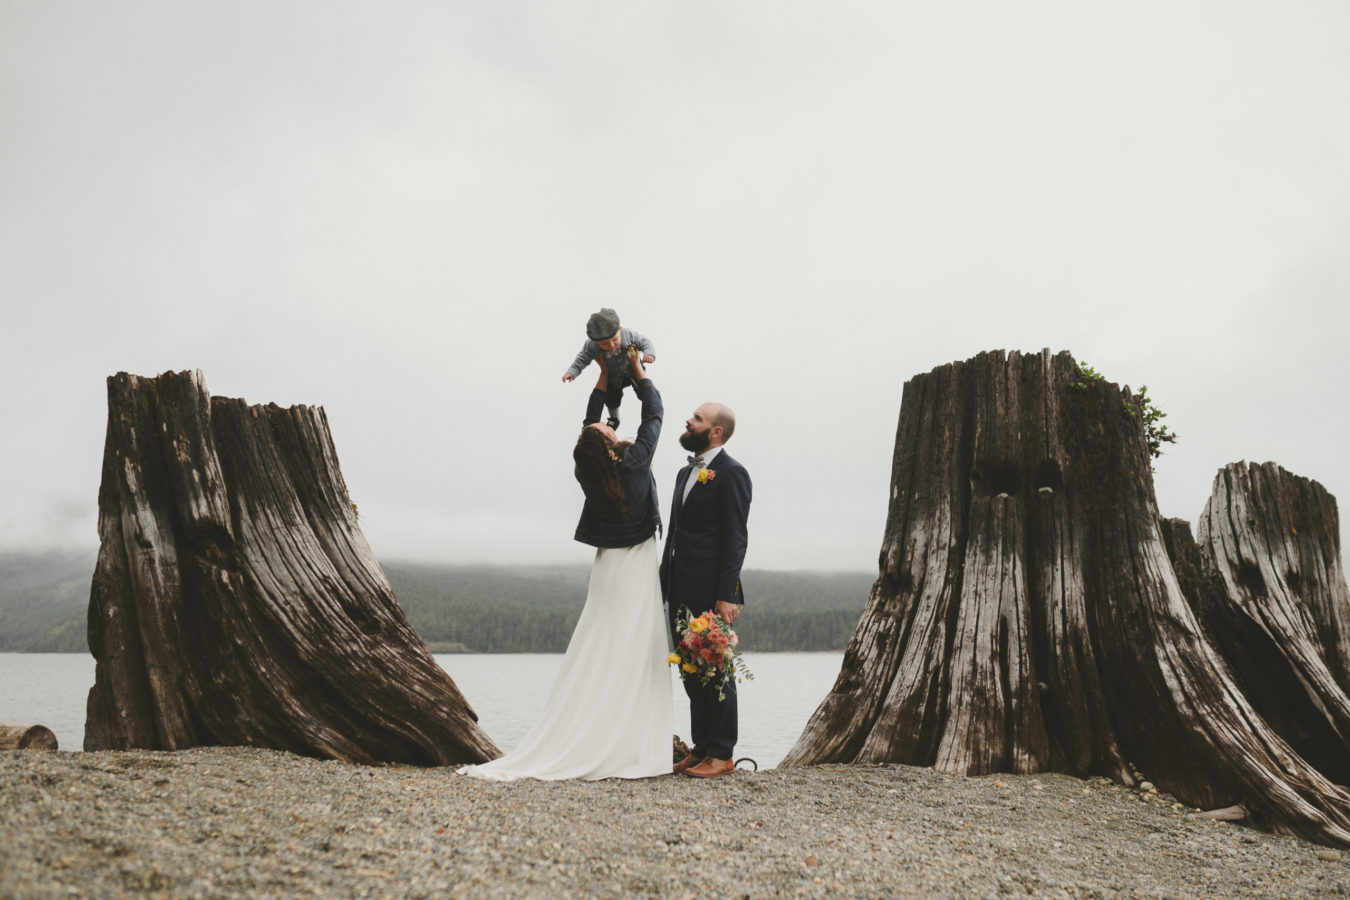 bride and groom on the beach by two huge stumps while bride gently tosses their toddler in the air above her